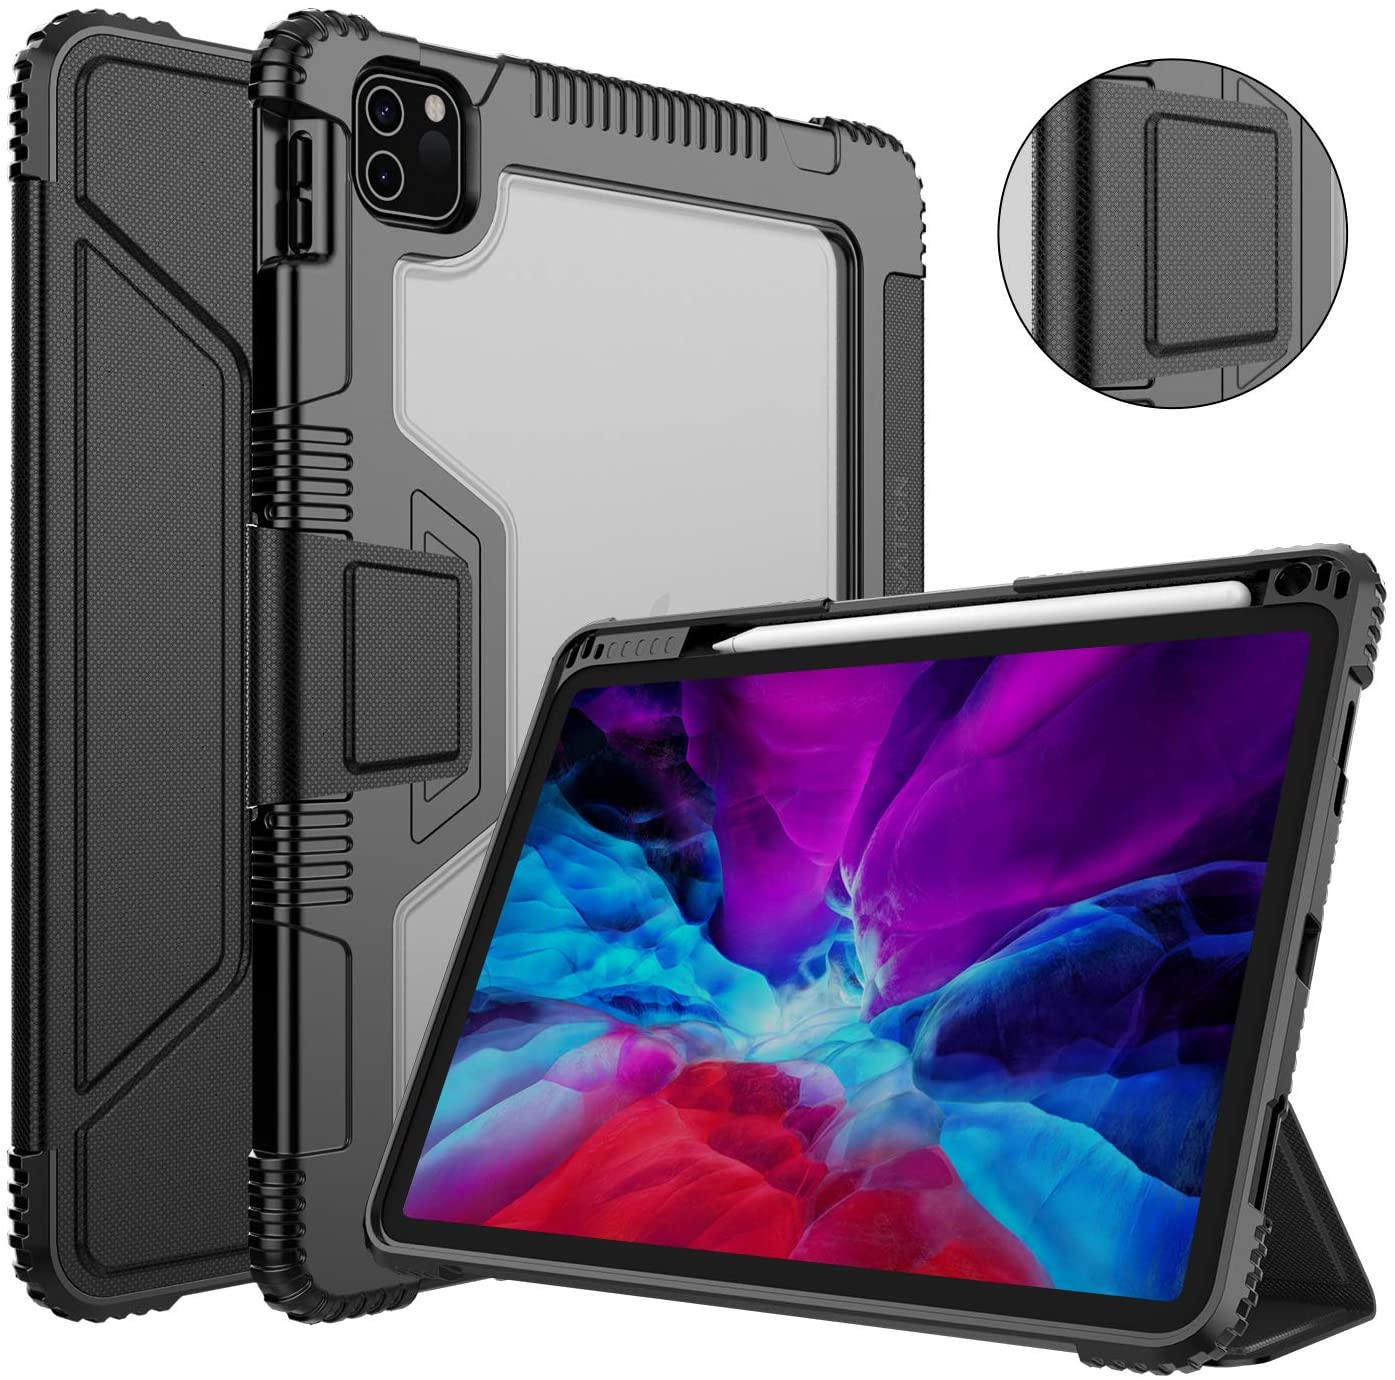 Nillkin iPad Pro 12.9 2020 4th Generation Case with Screen Protector, PU Leather Protective Case with Apple Pencil Holder and Auto Sleep/Wake, Smart Cover and Protective Film for iPad Pro 12.9